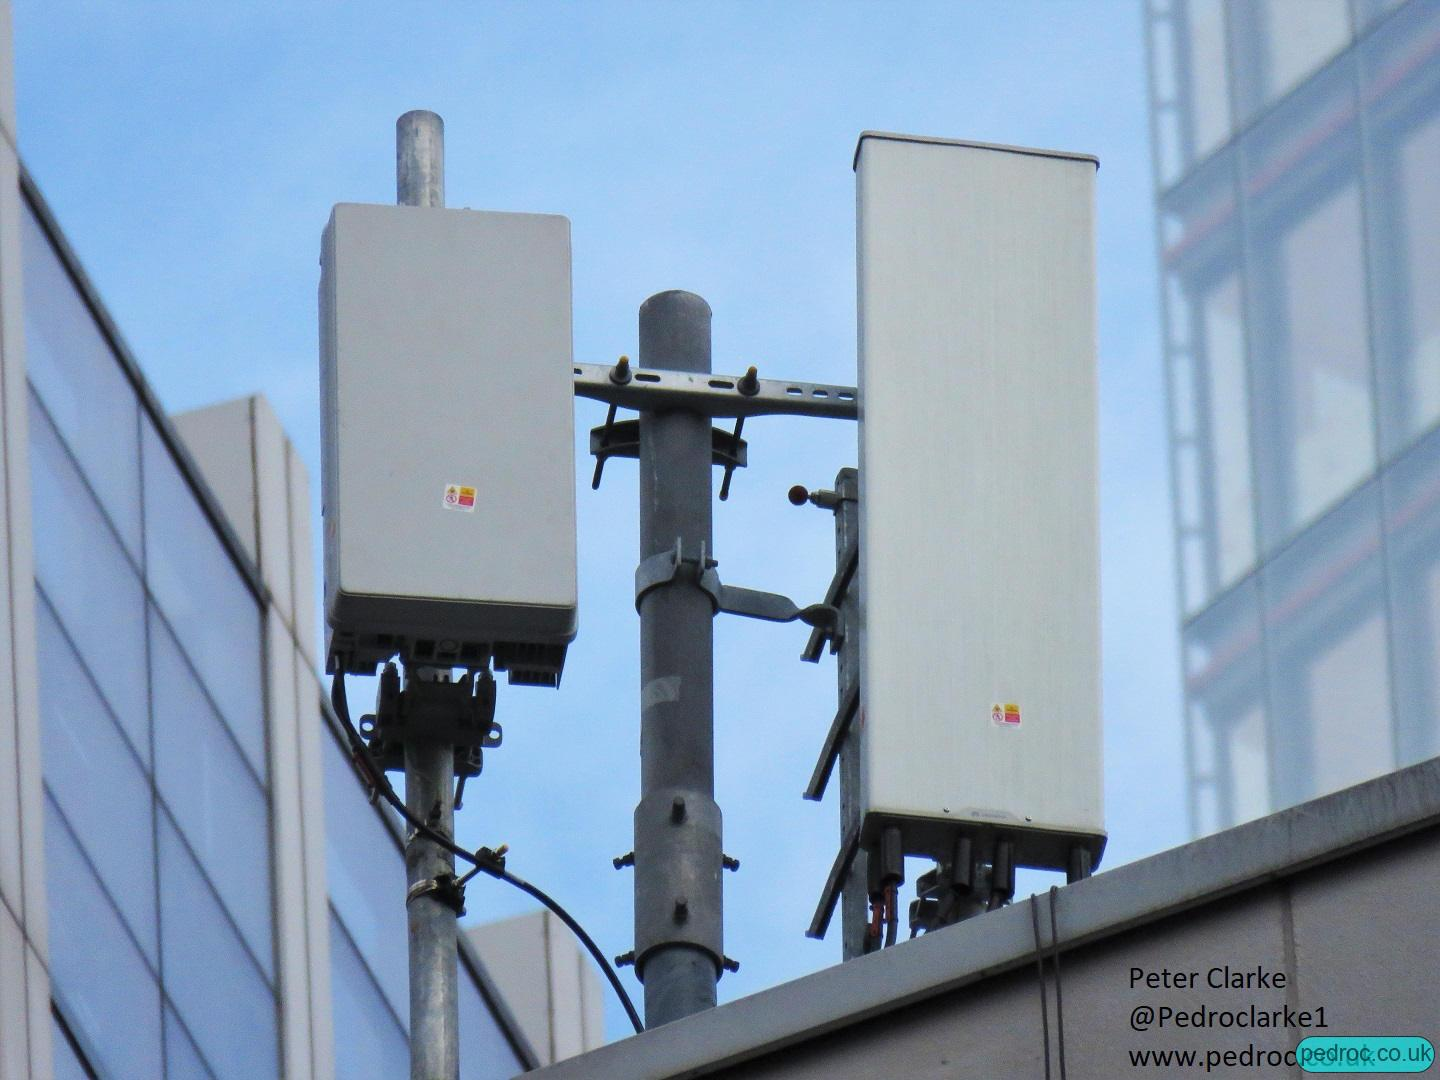 Closeup of EE 5G at Wormwood Street using Huawei AAU5613 Massive MIMO